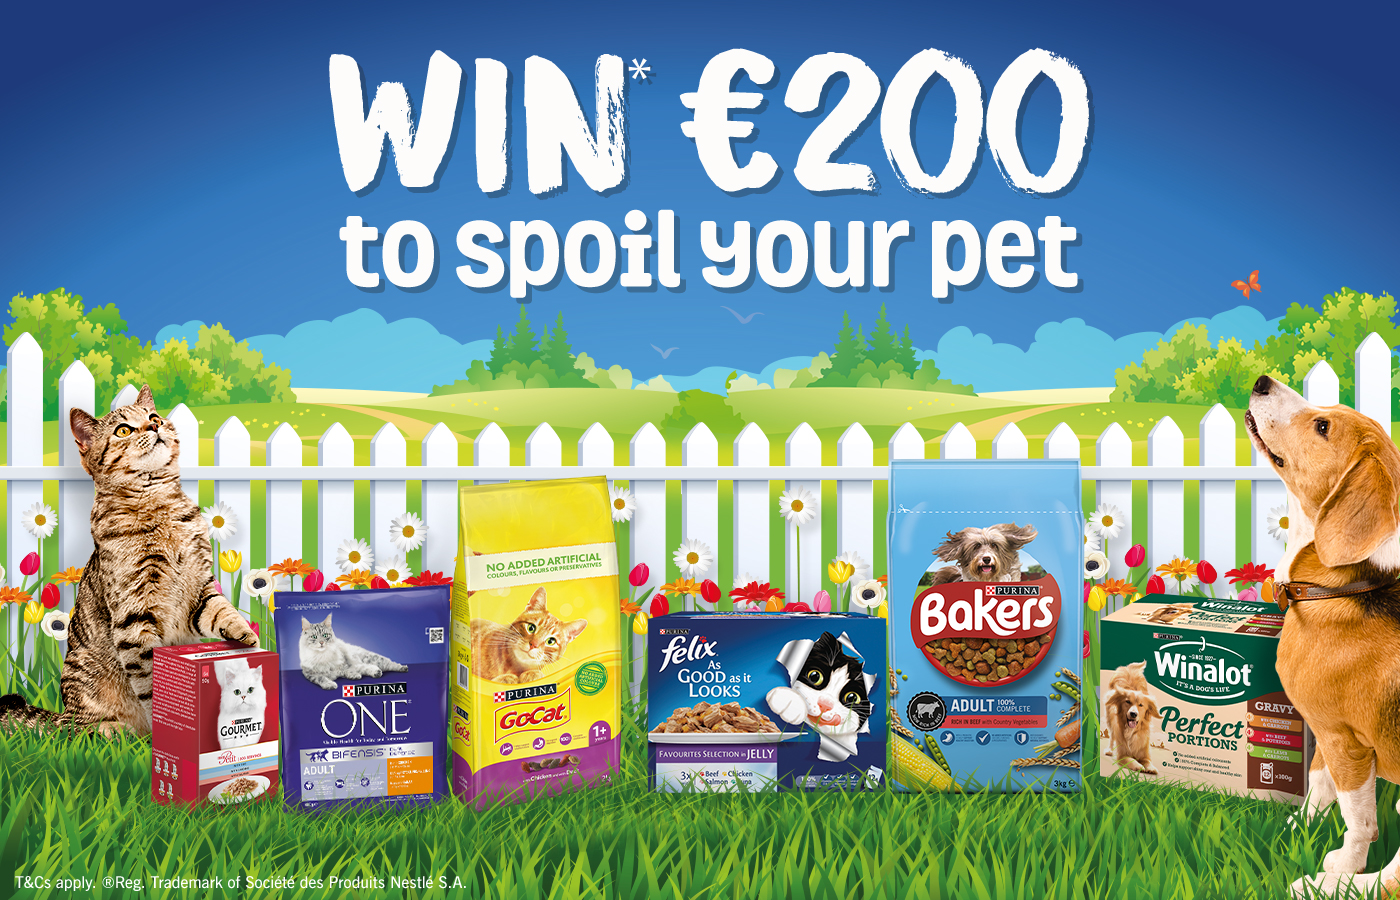 Win €200 to spoil your pet exclusively at Supervalu